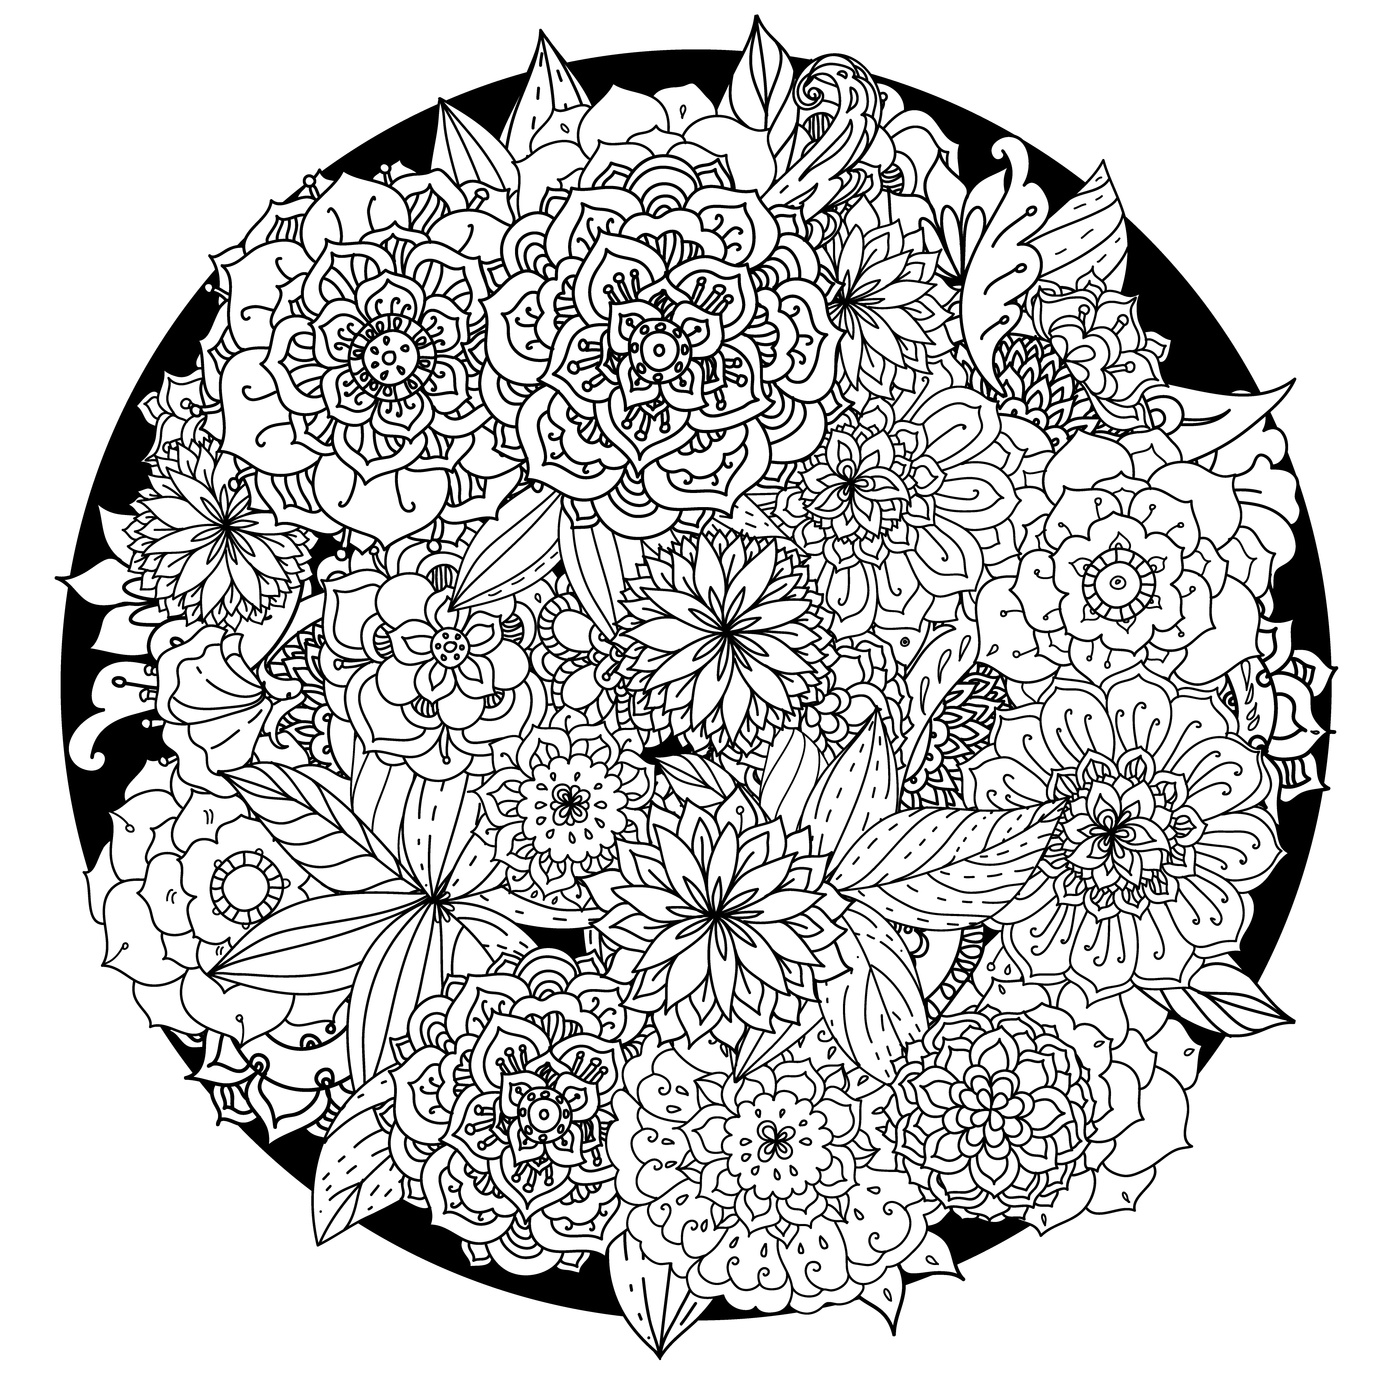 mandala coloring pages for adults free free mandala coloring pages for adults coloring home mandala free coloring pages for adults